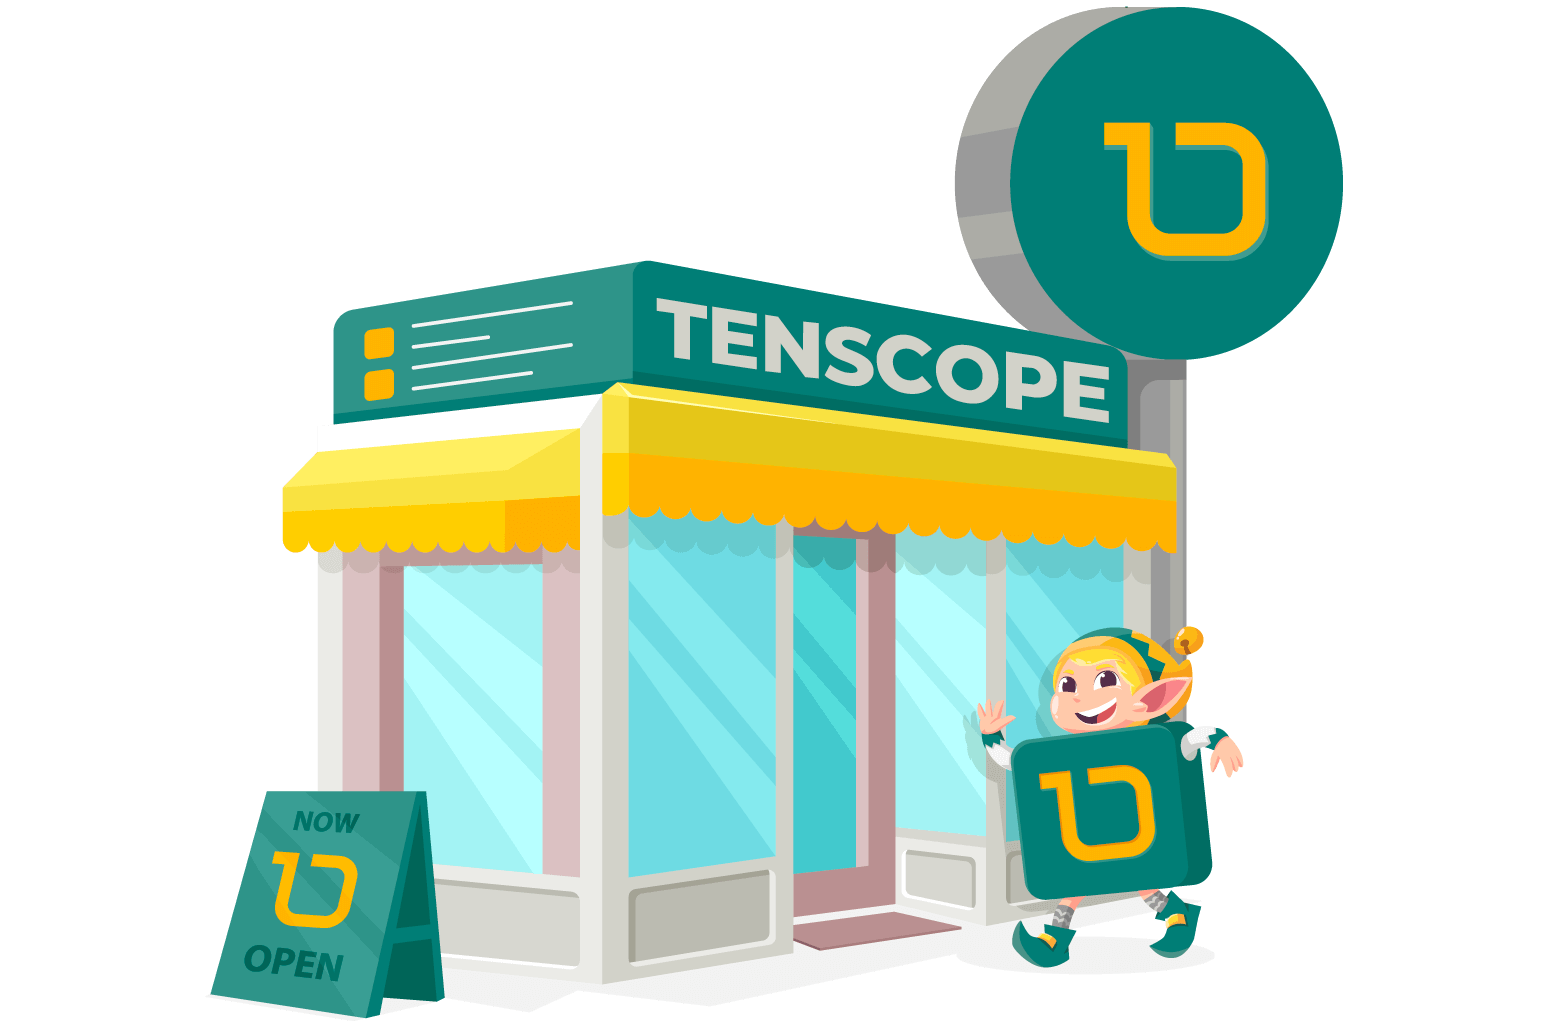 Illustration of a shop with tenscope logo on it